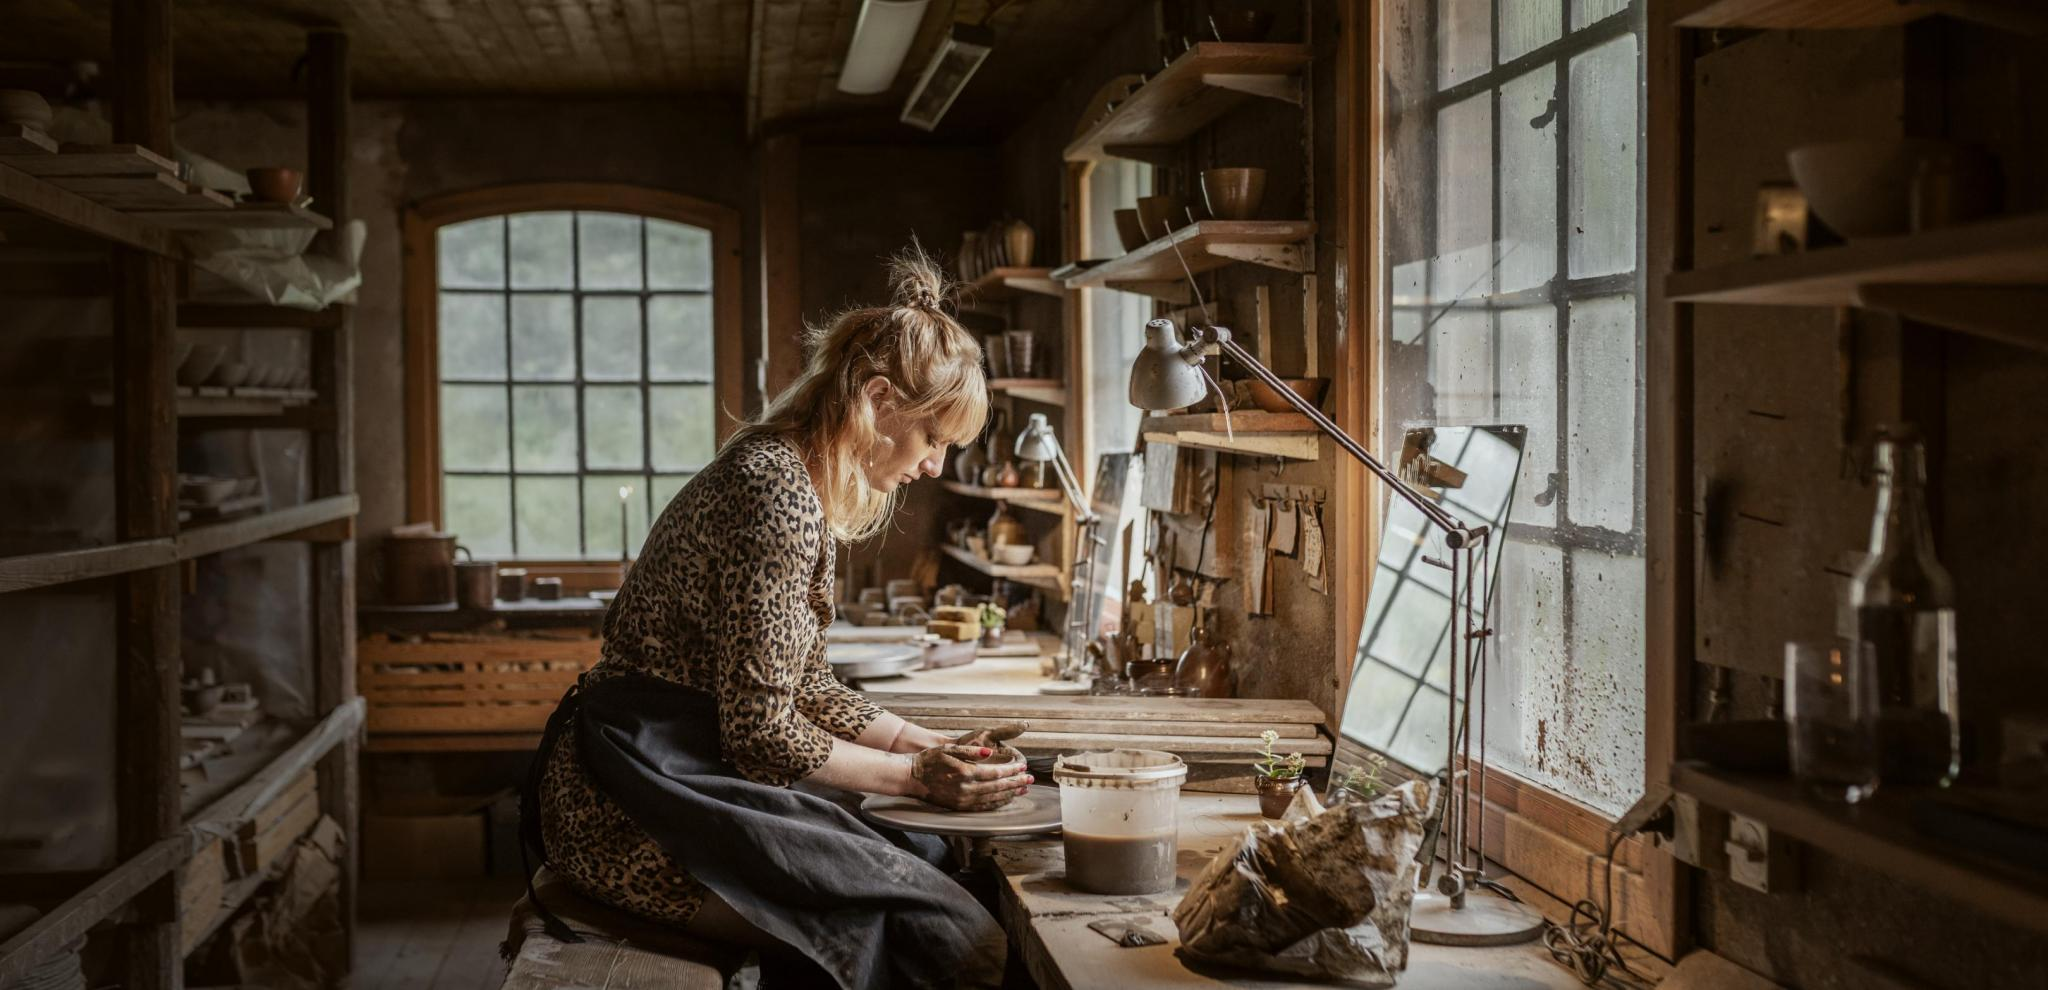 A woman sits on a chair and do pottery